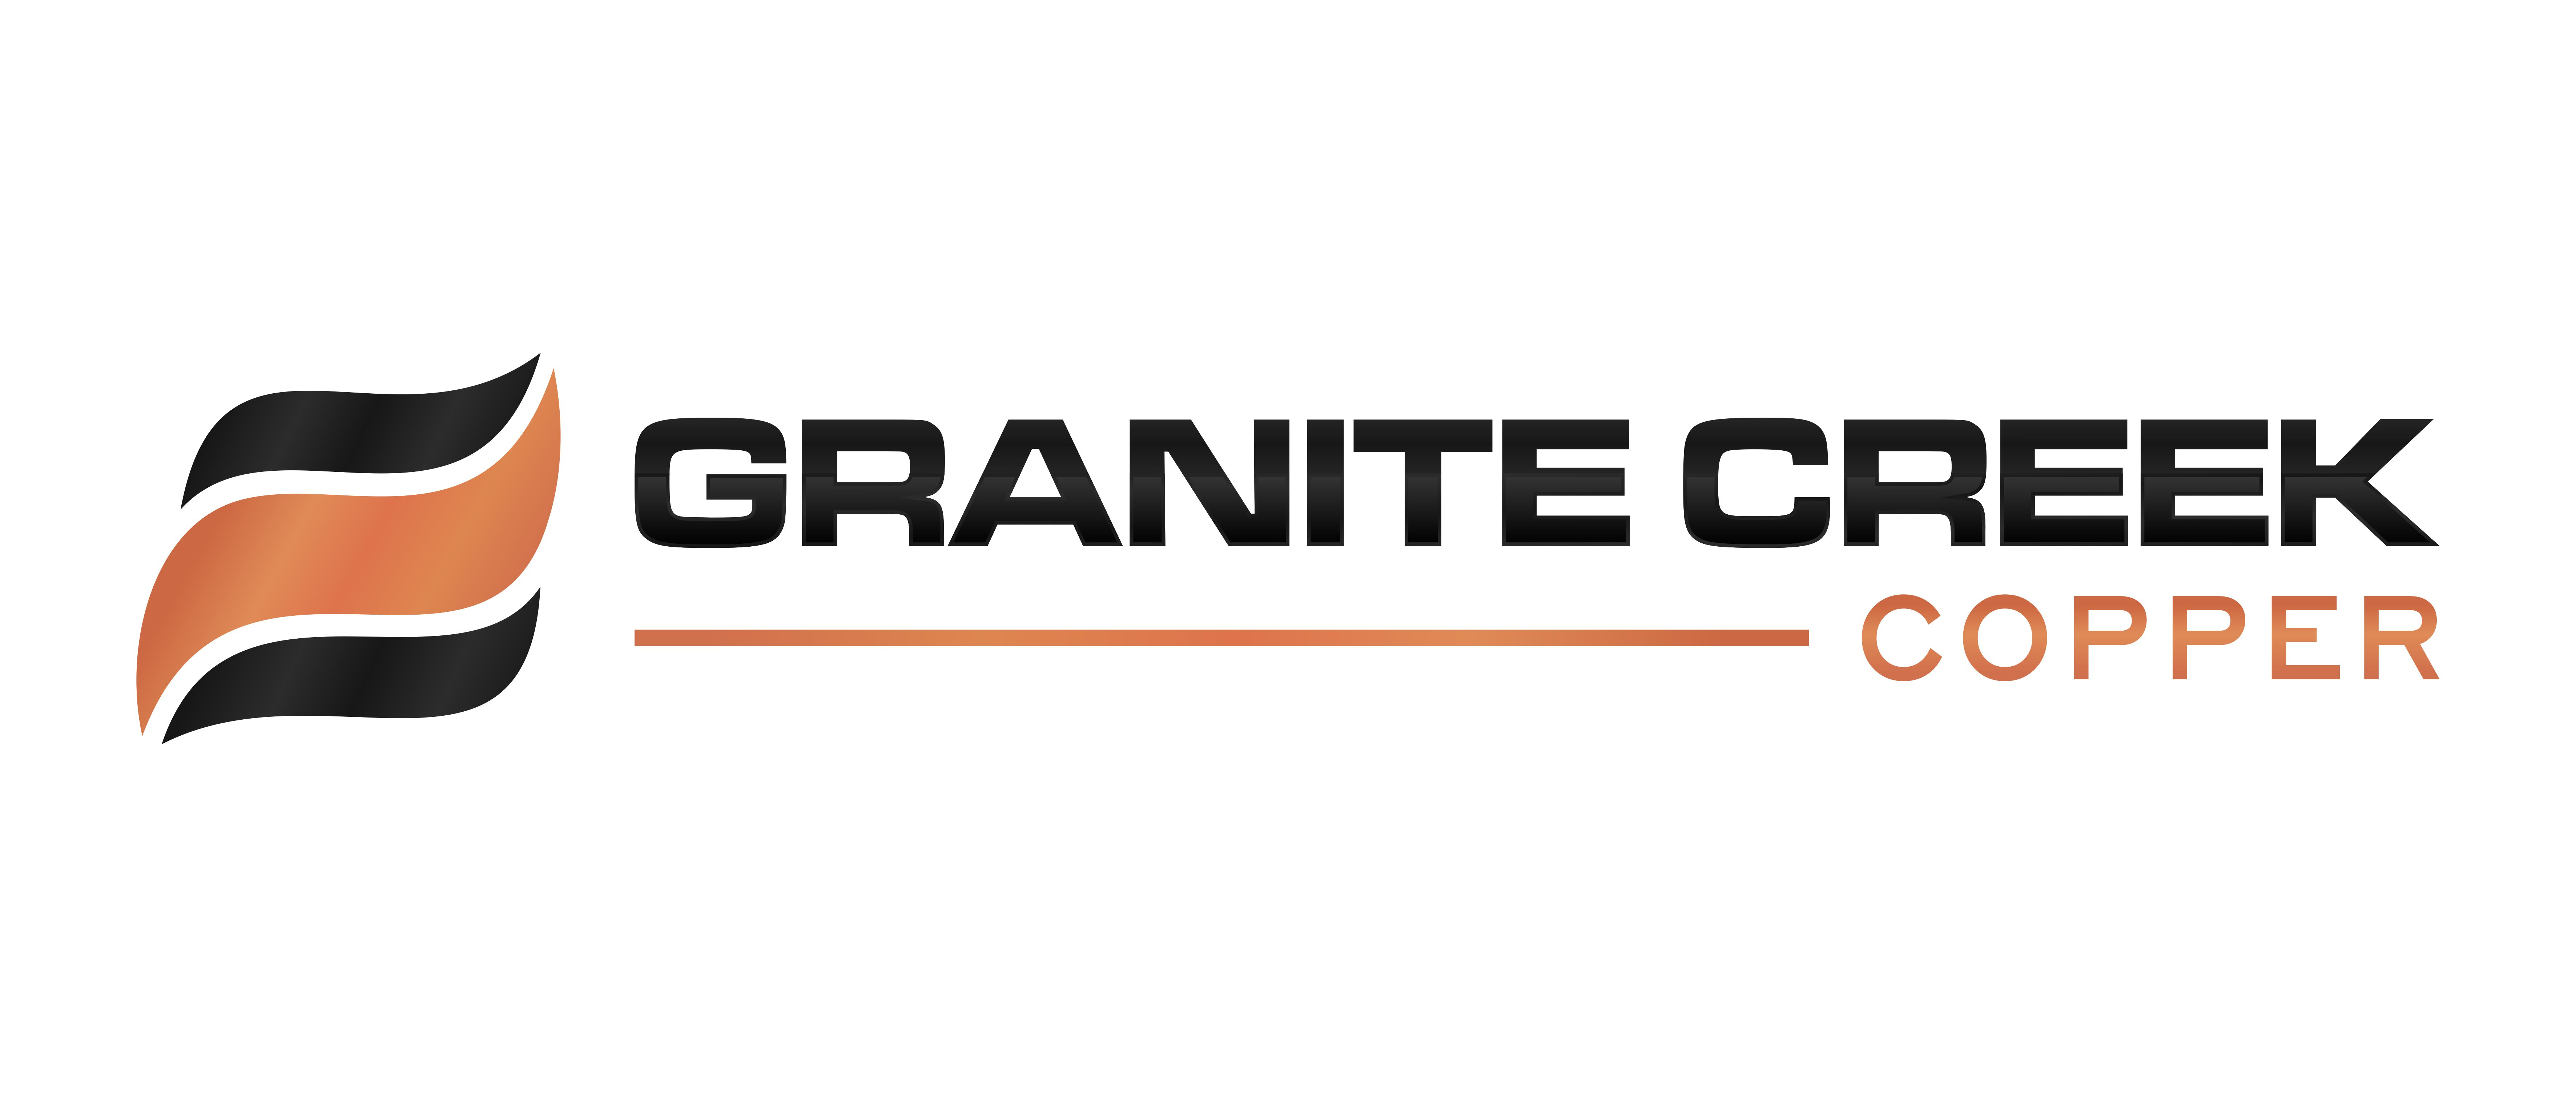 Granite Creek Copper Completes 30% Acquisition of Copper North Mining